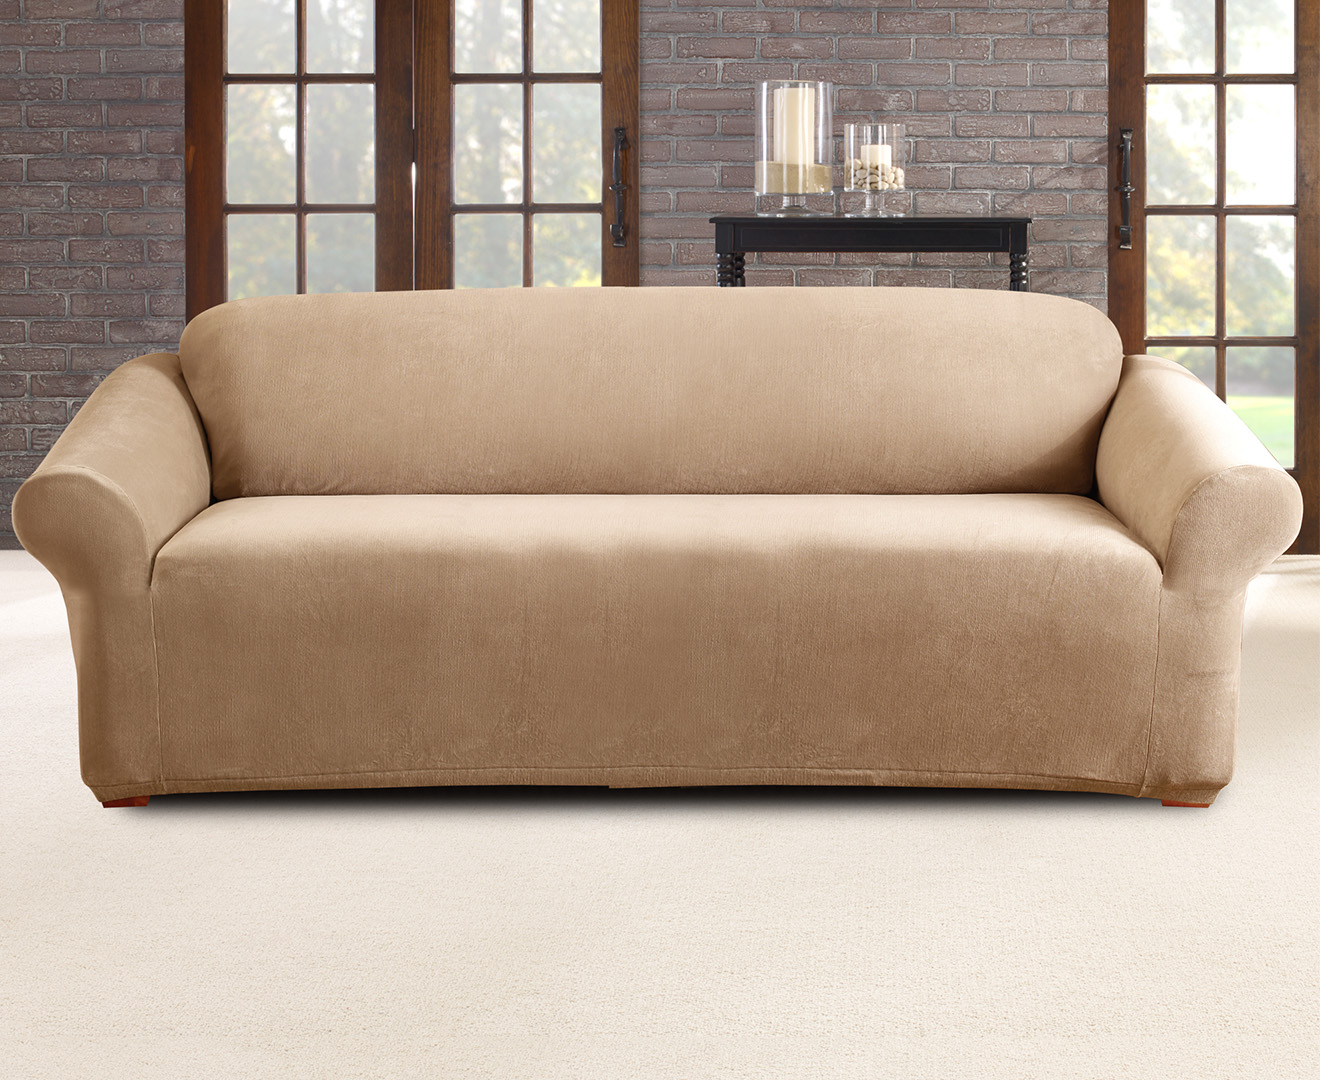 surefit pearson sofa cover pottery barn slipcovered bed sure fit stretch 3 seater flax great daily